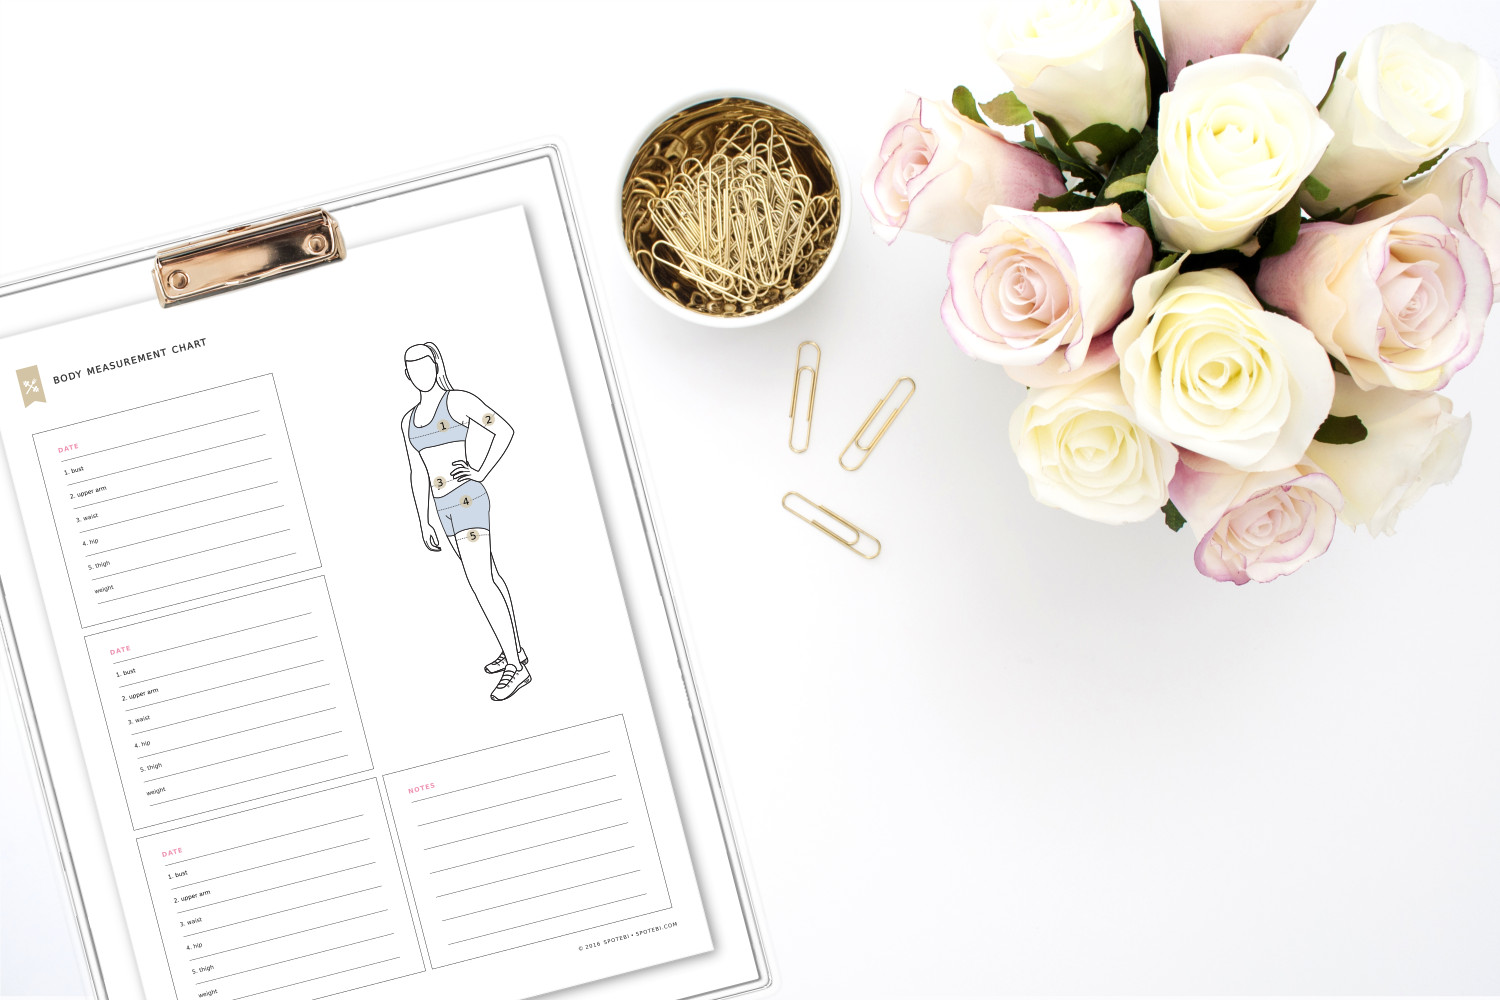 Print our free body measurement chart and measure each body part every 4 weeks. Get inspired by your progress and stay on track with all your fitness goals. https://www.spotebi.com/fitness-tracker/body-measurement-chart/